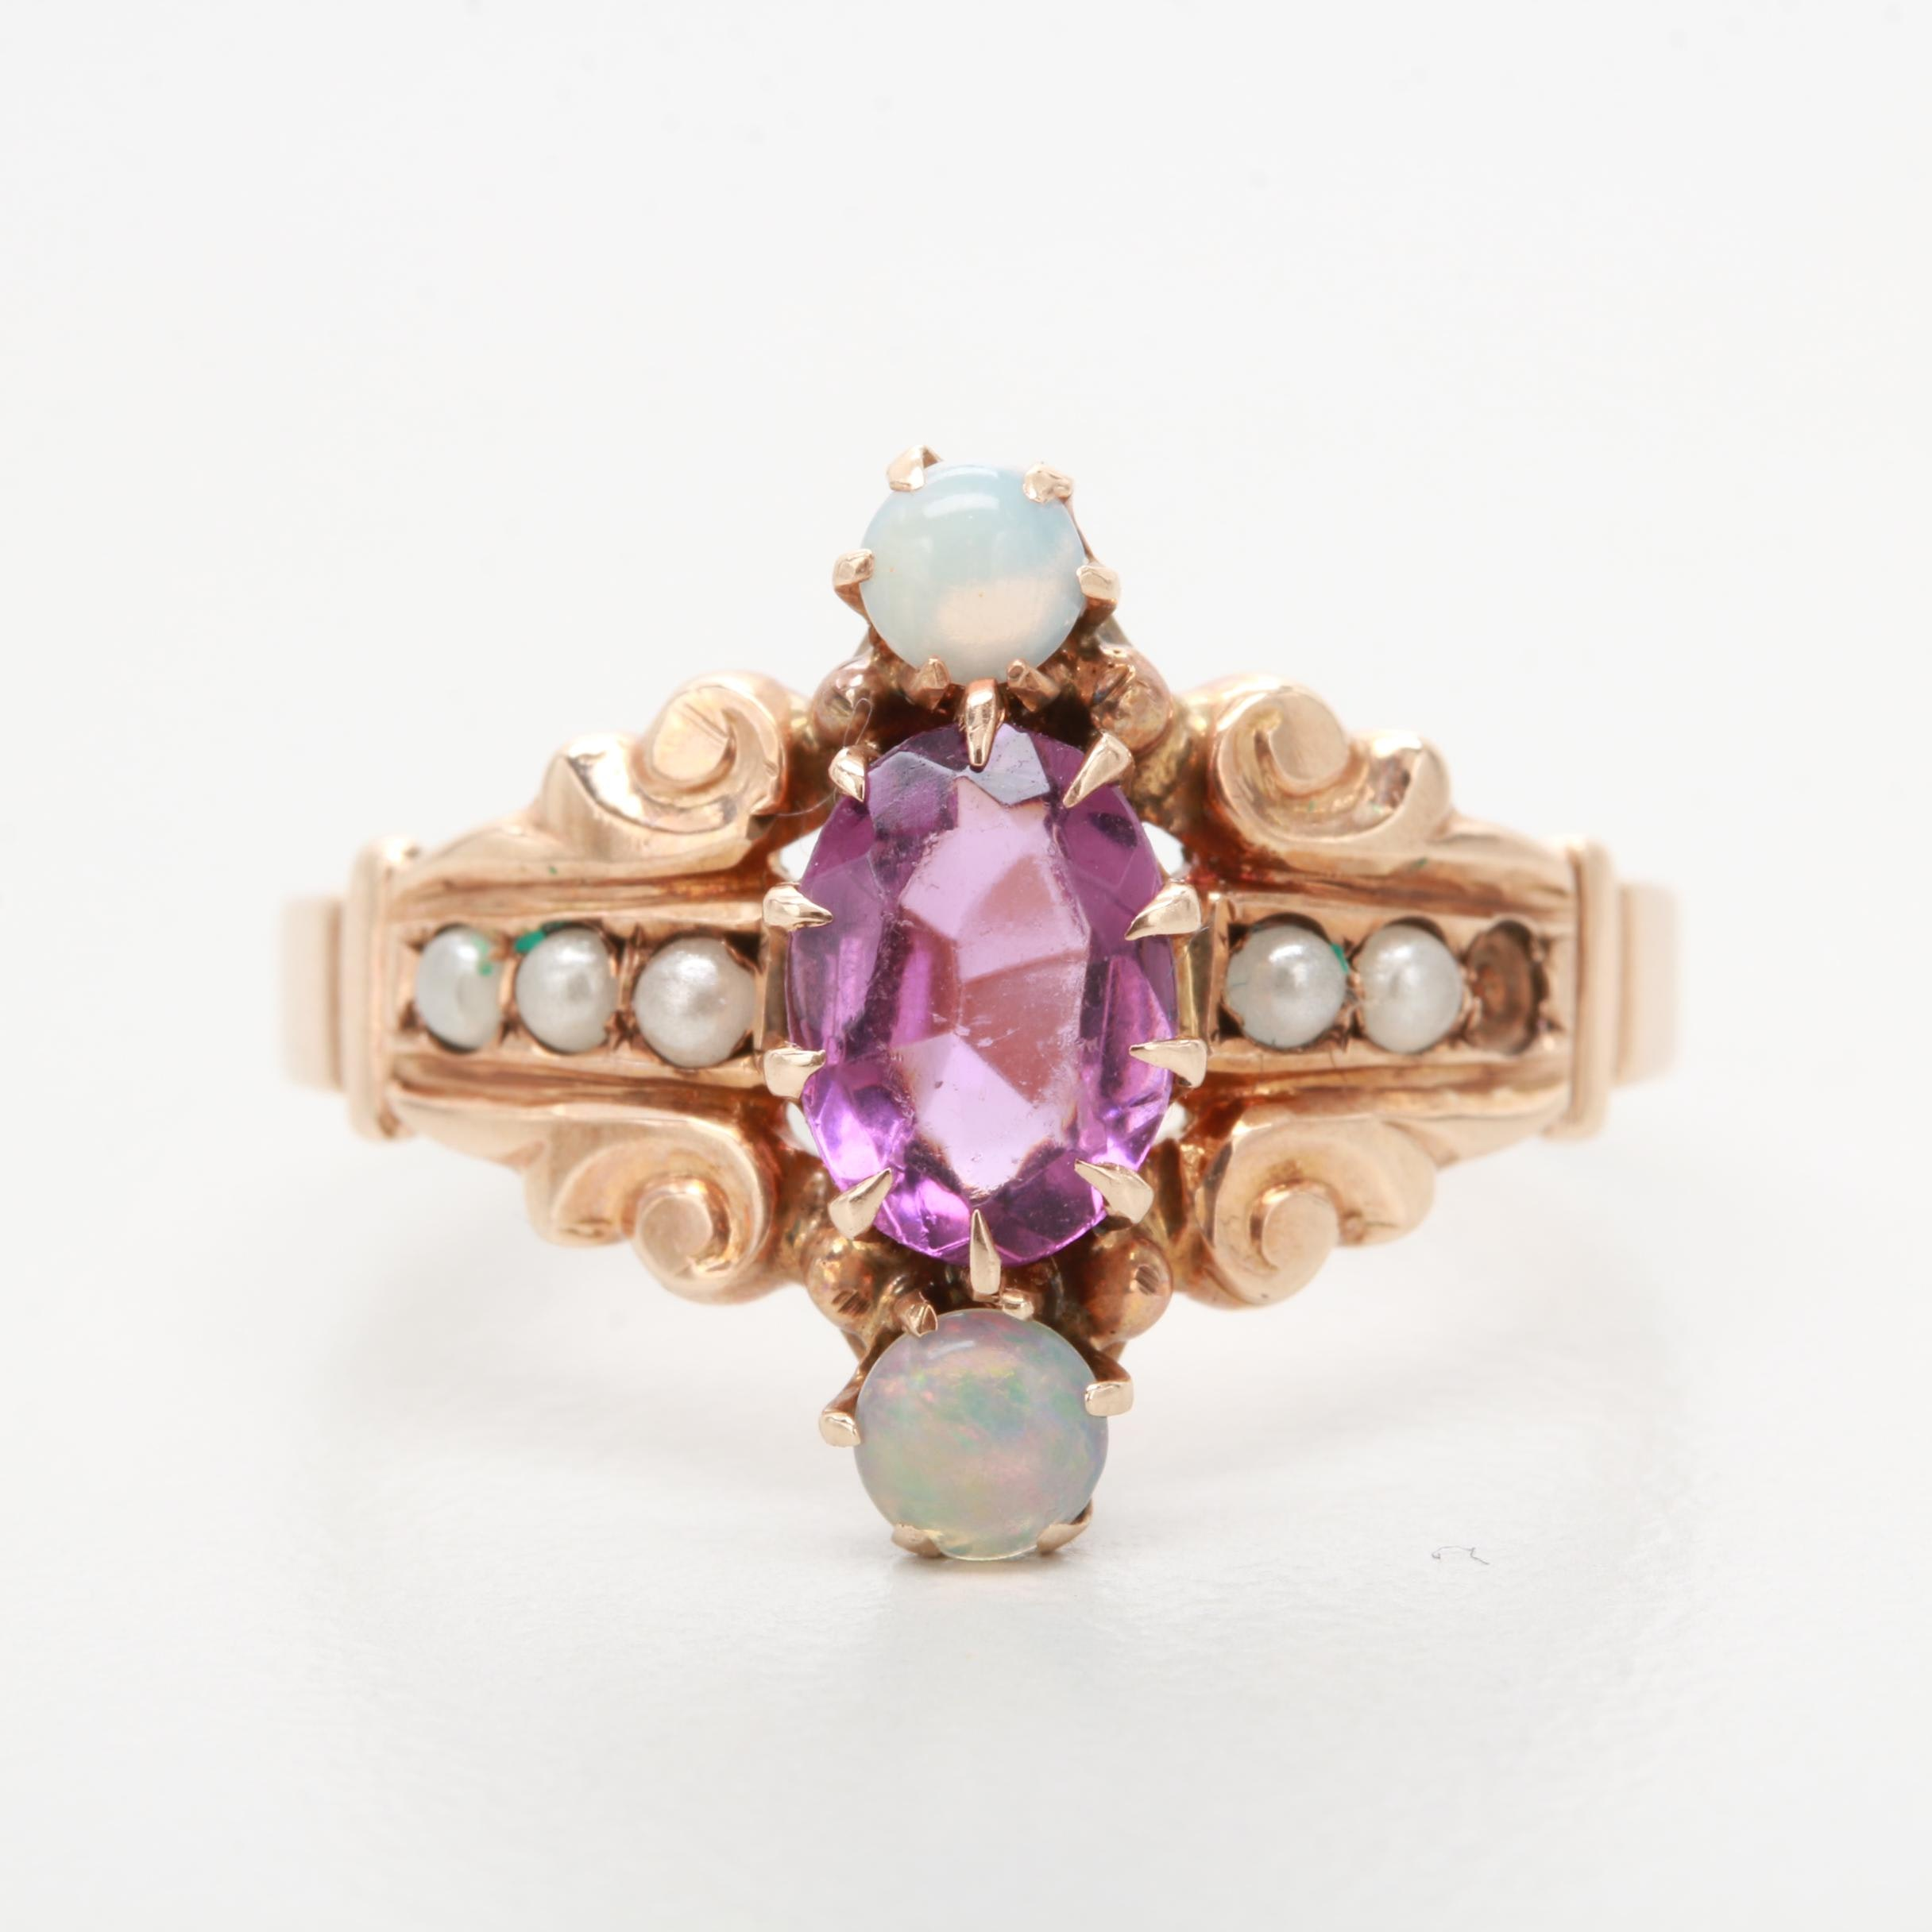 Early Victorian 10K Rose Gold Glass, Opal, and Imitation Pearl Ring